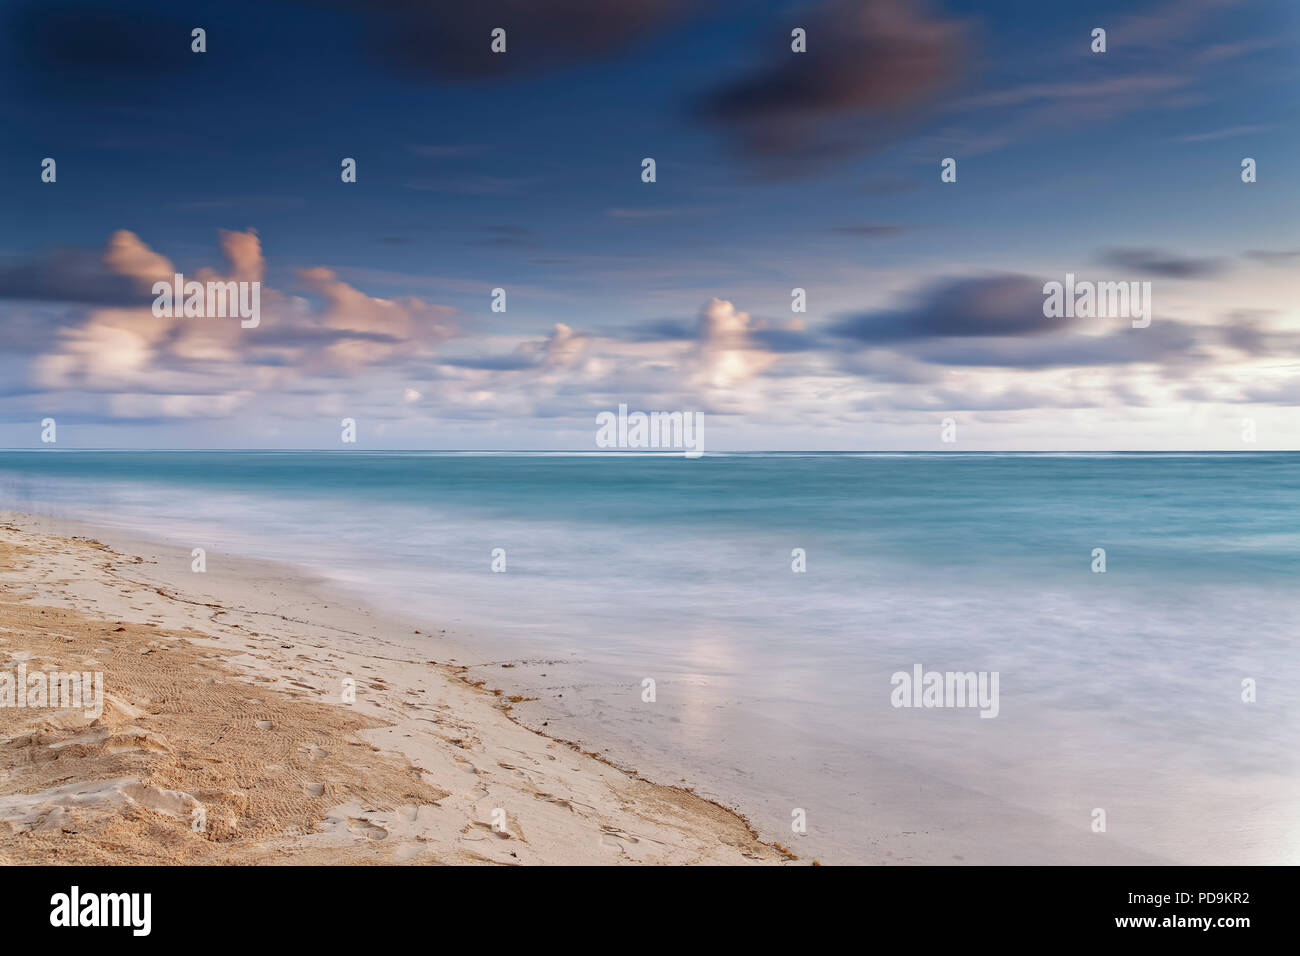 Sandy beach, sea with cloudy sky, Playa Bavaro, Atlantic Ocean, Punta Cana, Dominican Republic - Stock Image